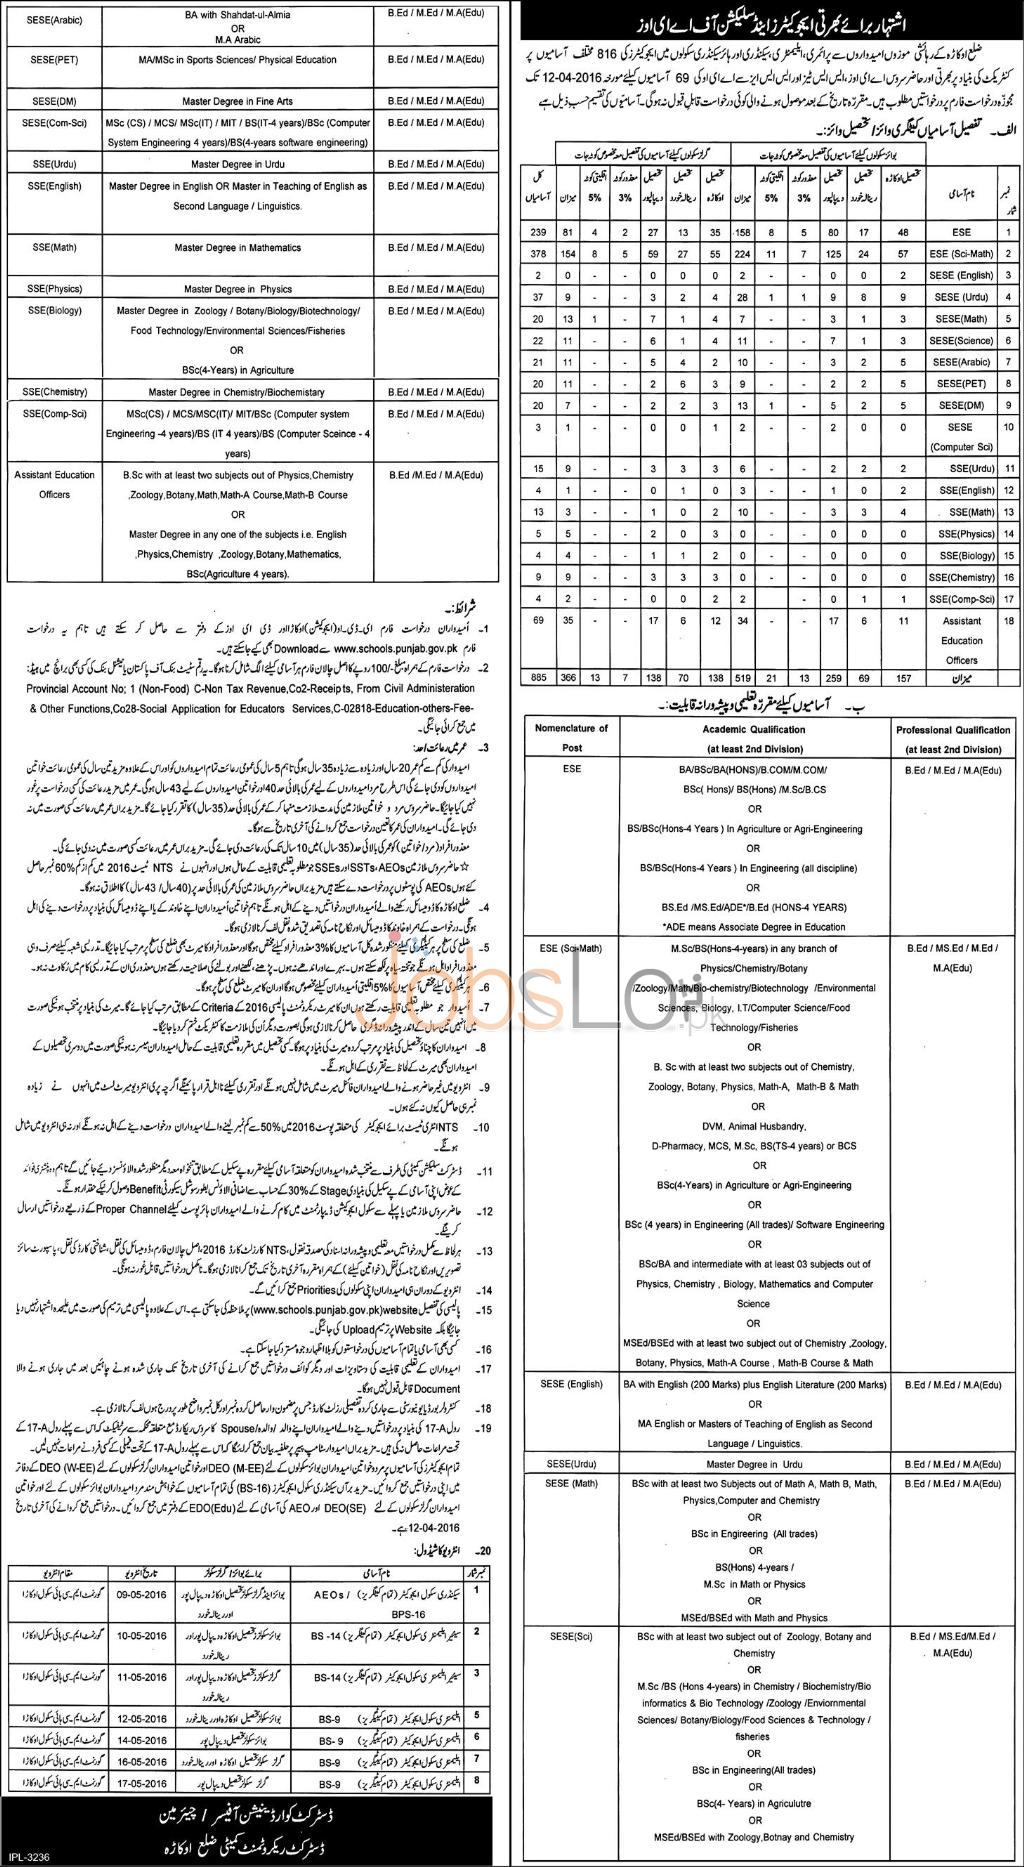 Punjab School Education Department Jobs